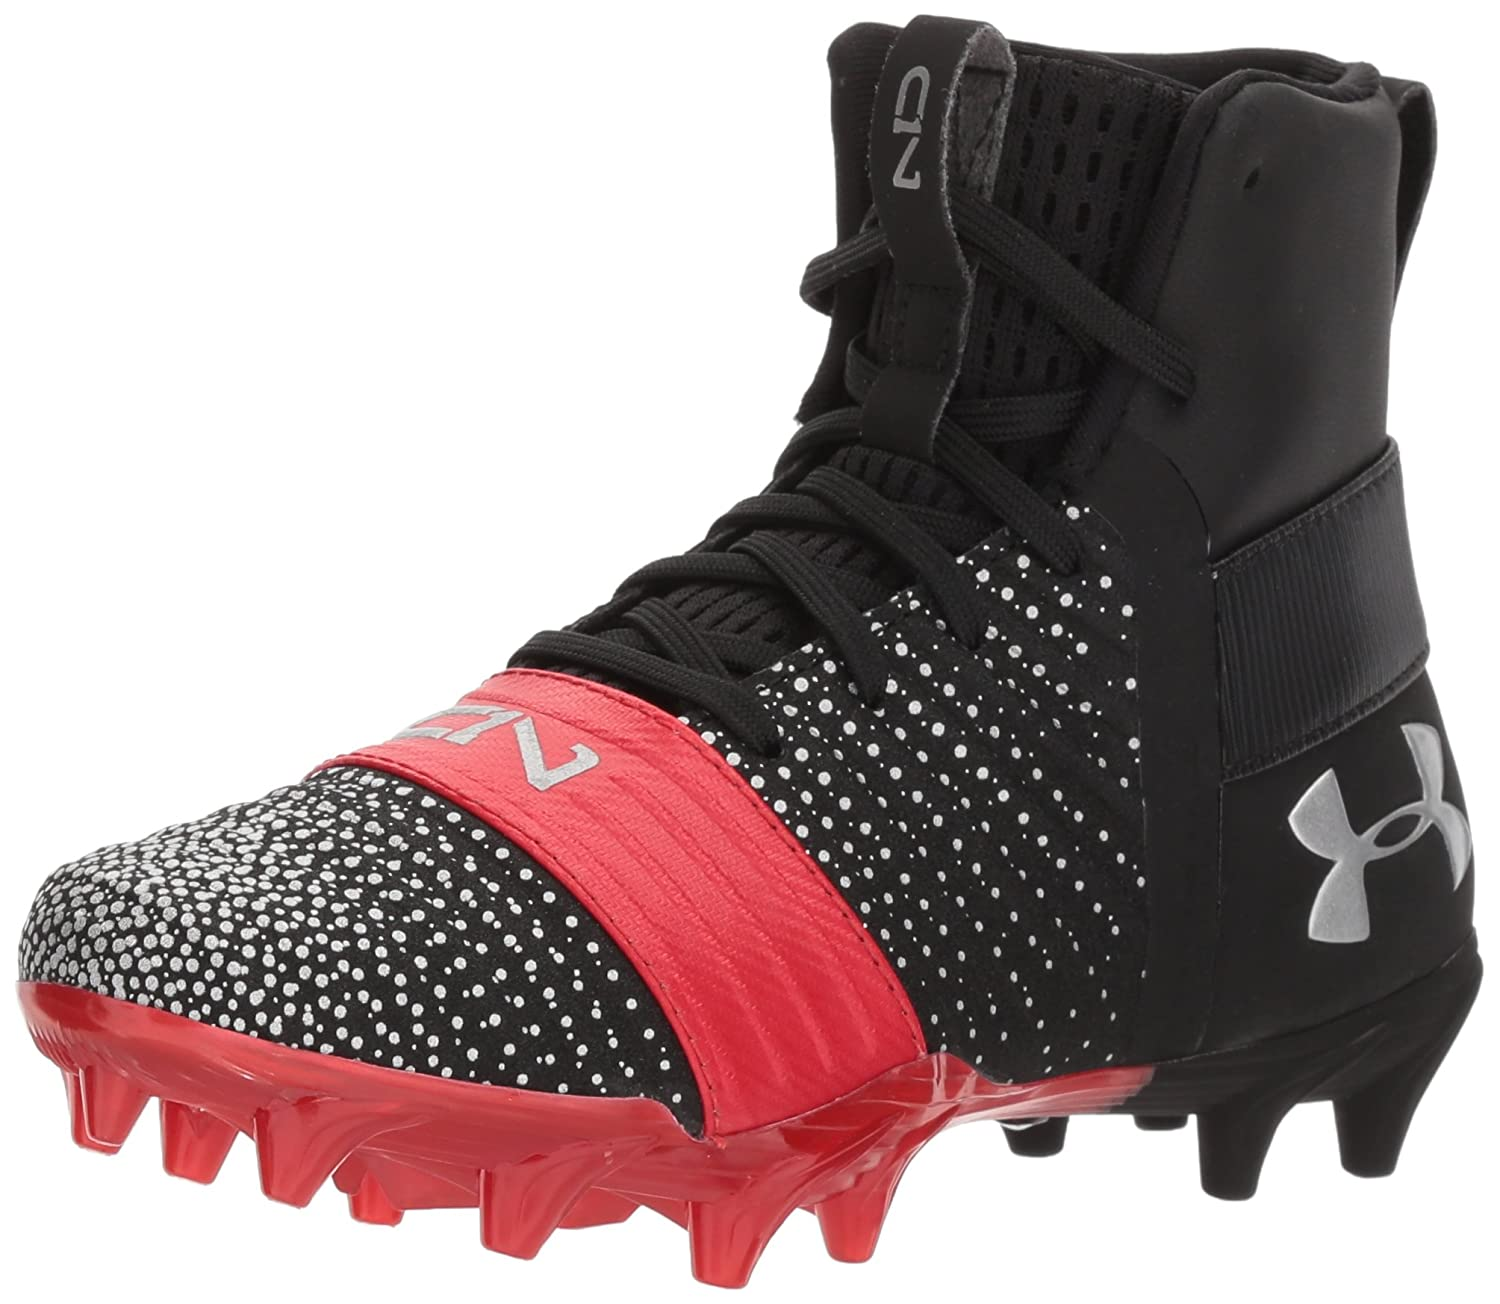 Under Armour Boys' C1N MC Jr. Football Shoe, Black (002)/Red, 4.5 3000192